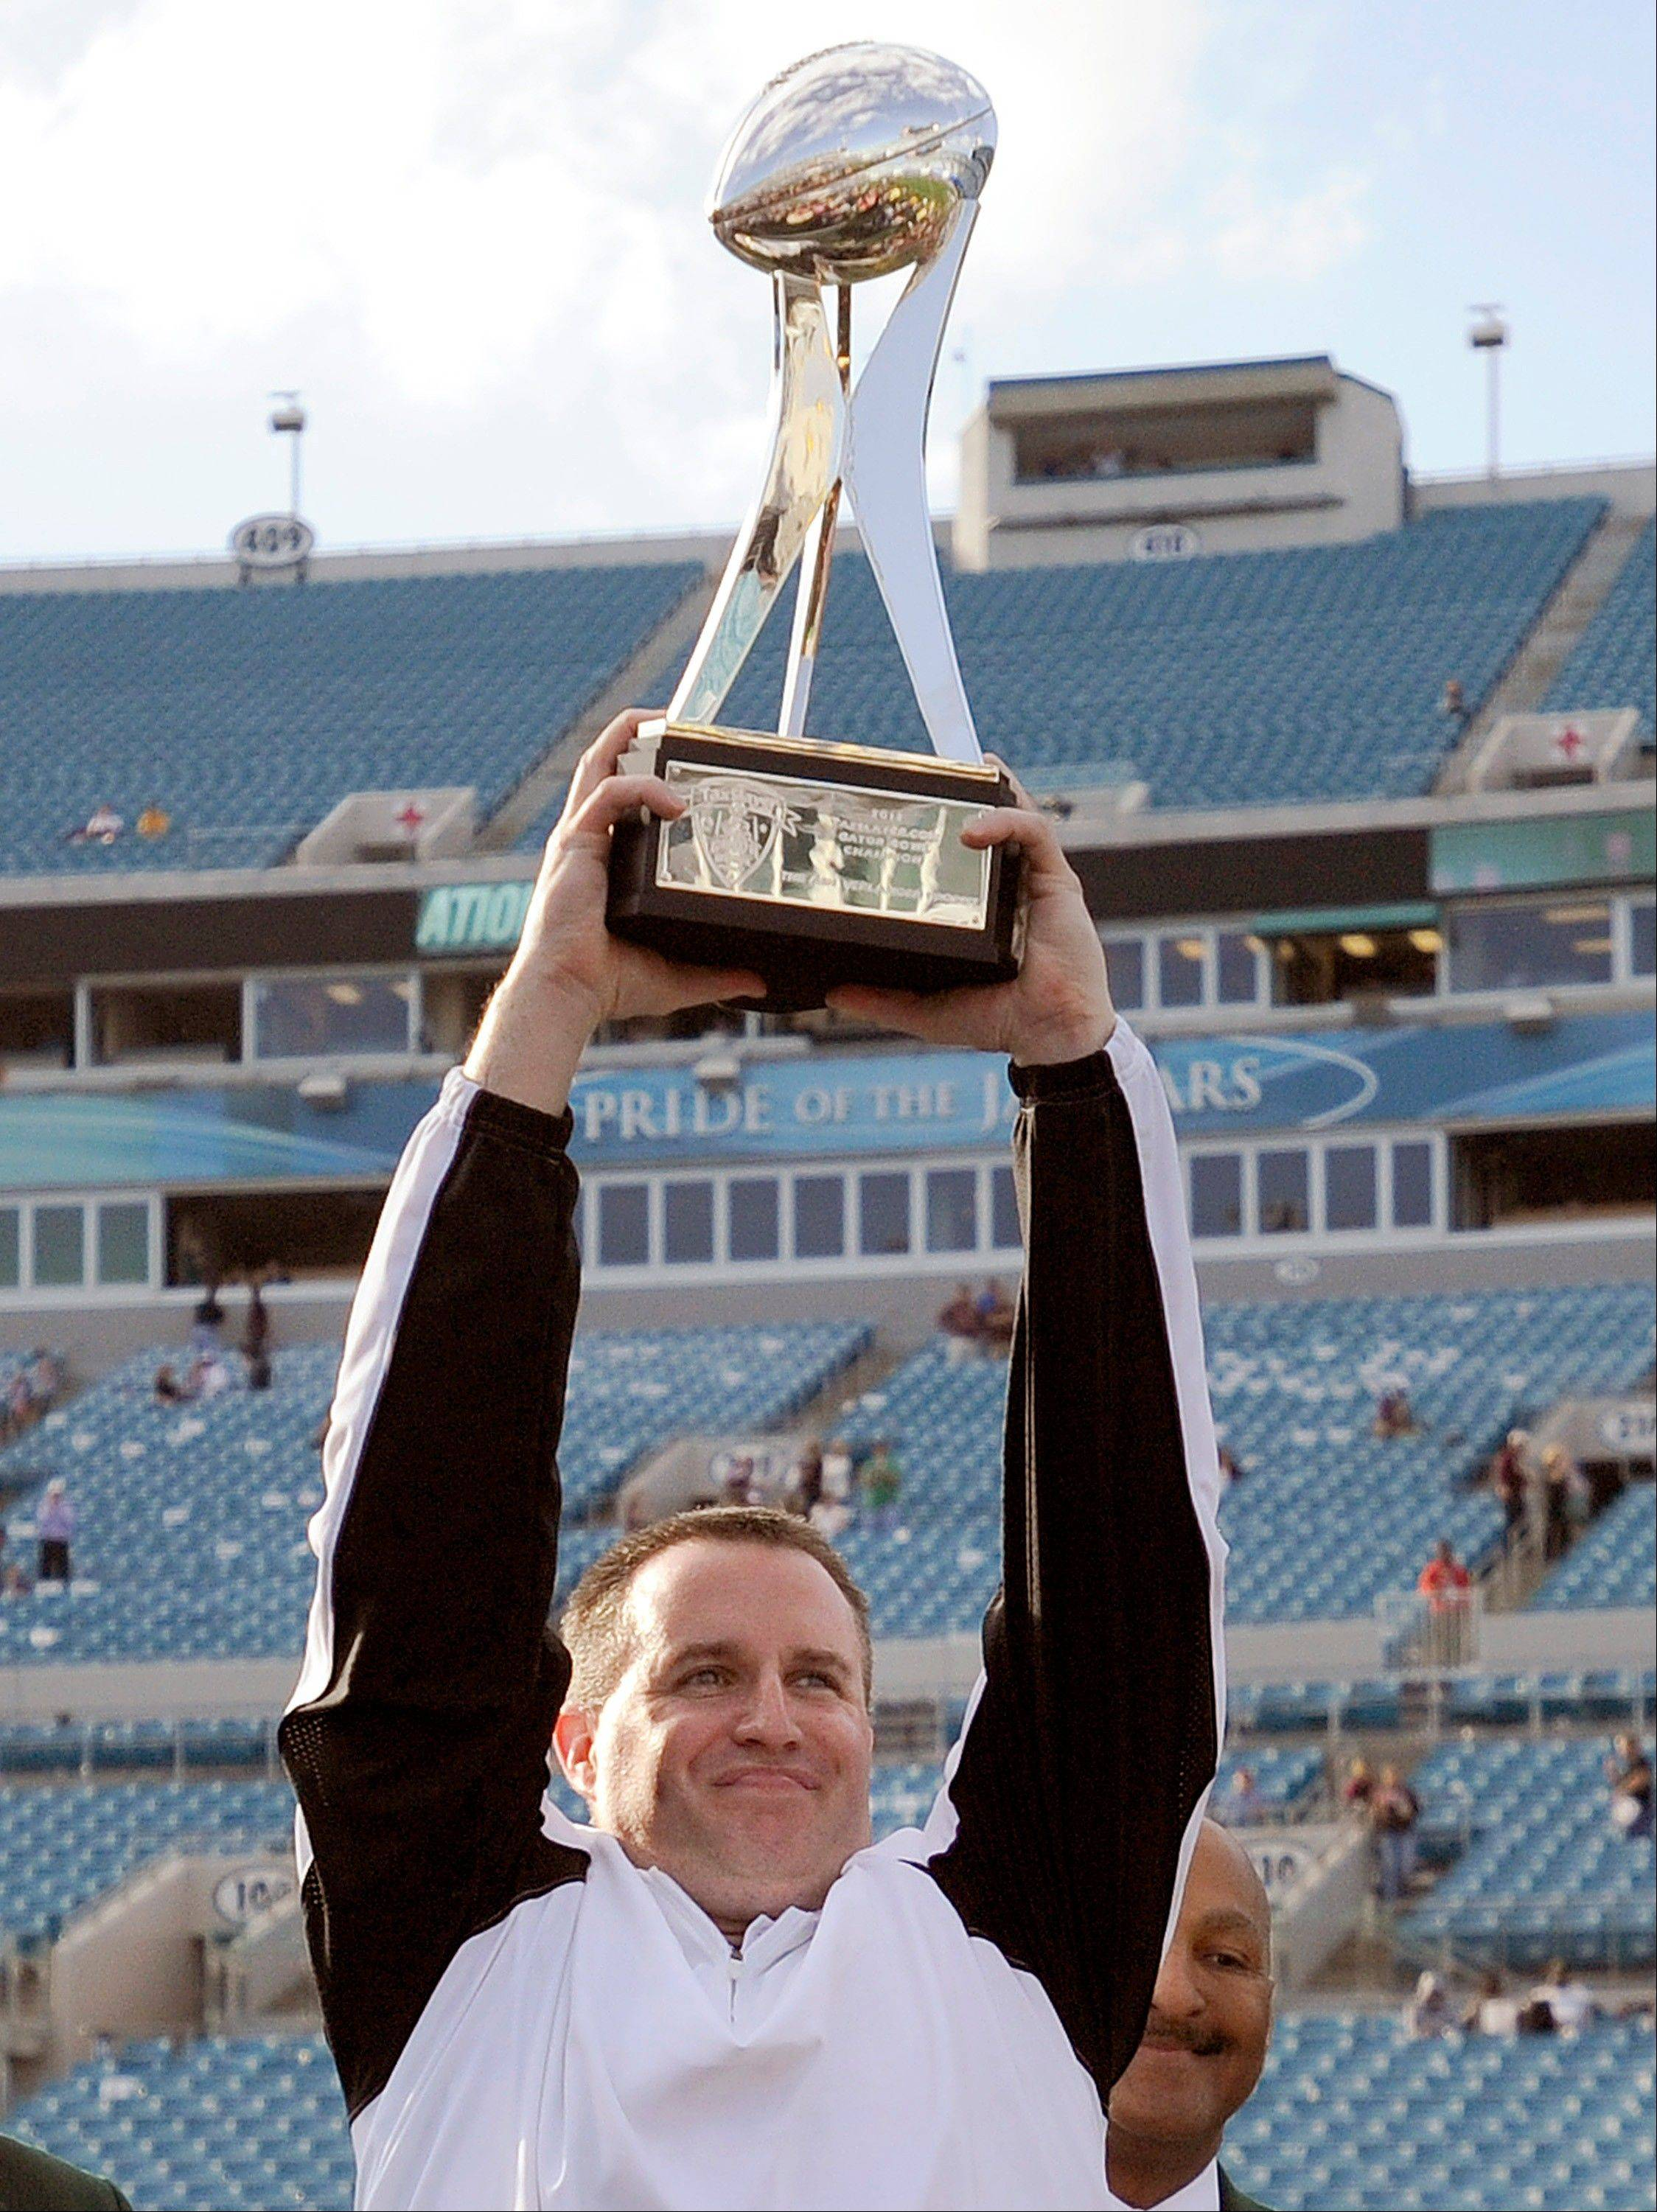 Northwestern head coach Pat Fitzgerald celebrates with the trophy after their 34-20 win over Mississippi State in the Gator Bowl on Tuesday.